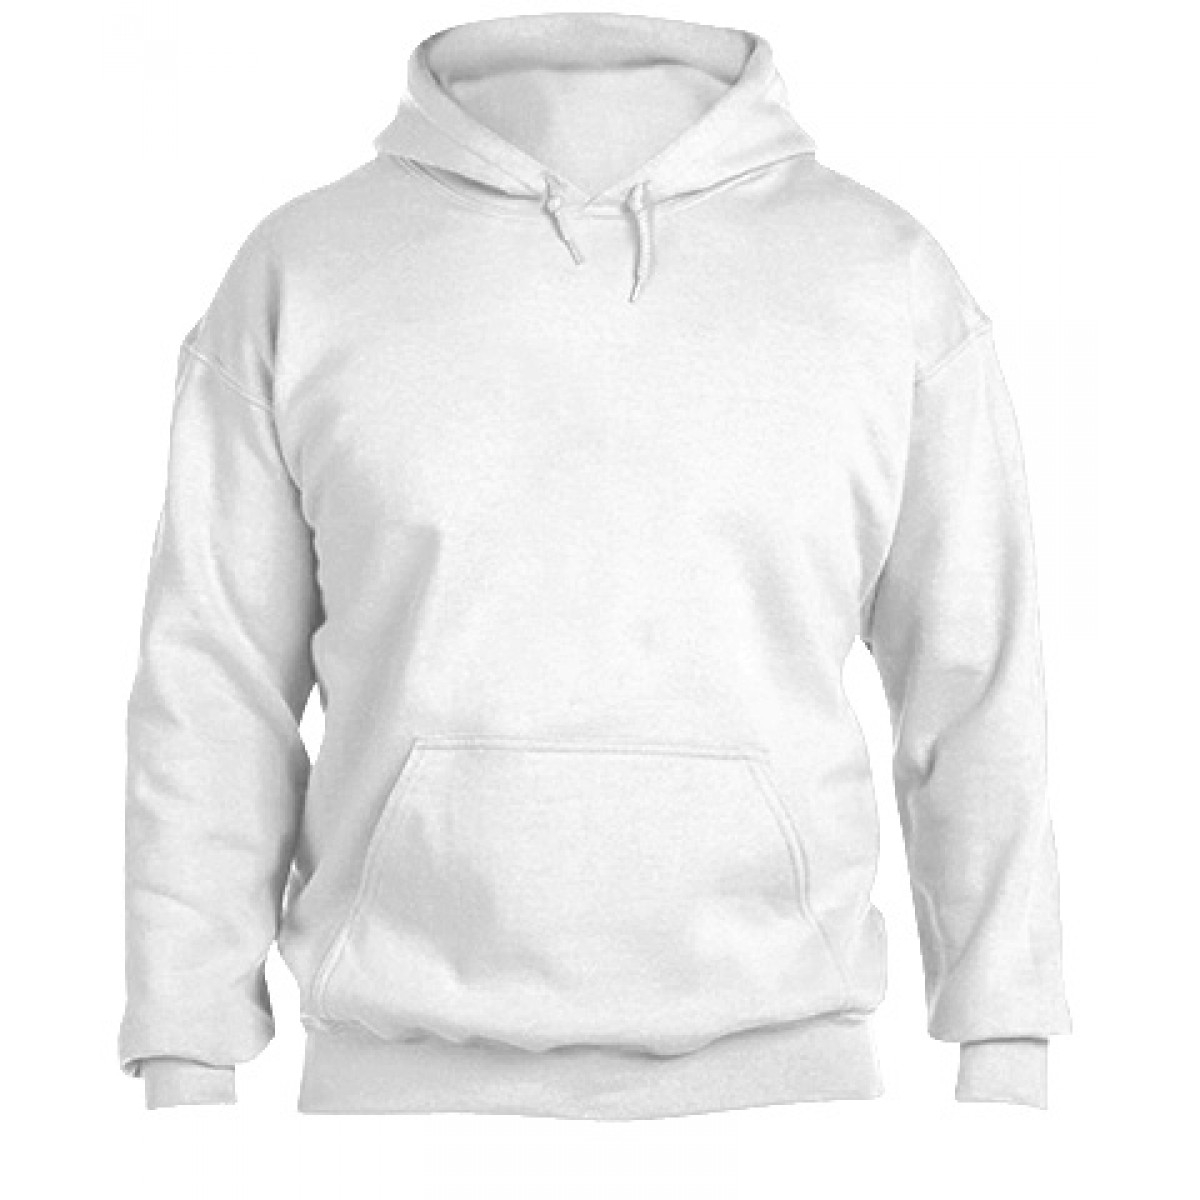 Hooded Sweatshirt 50/50 Heavy Blend -White-XL